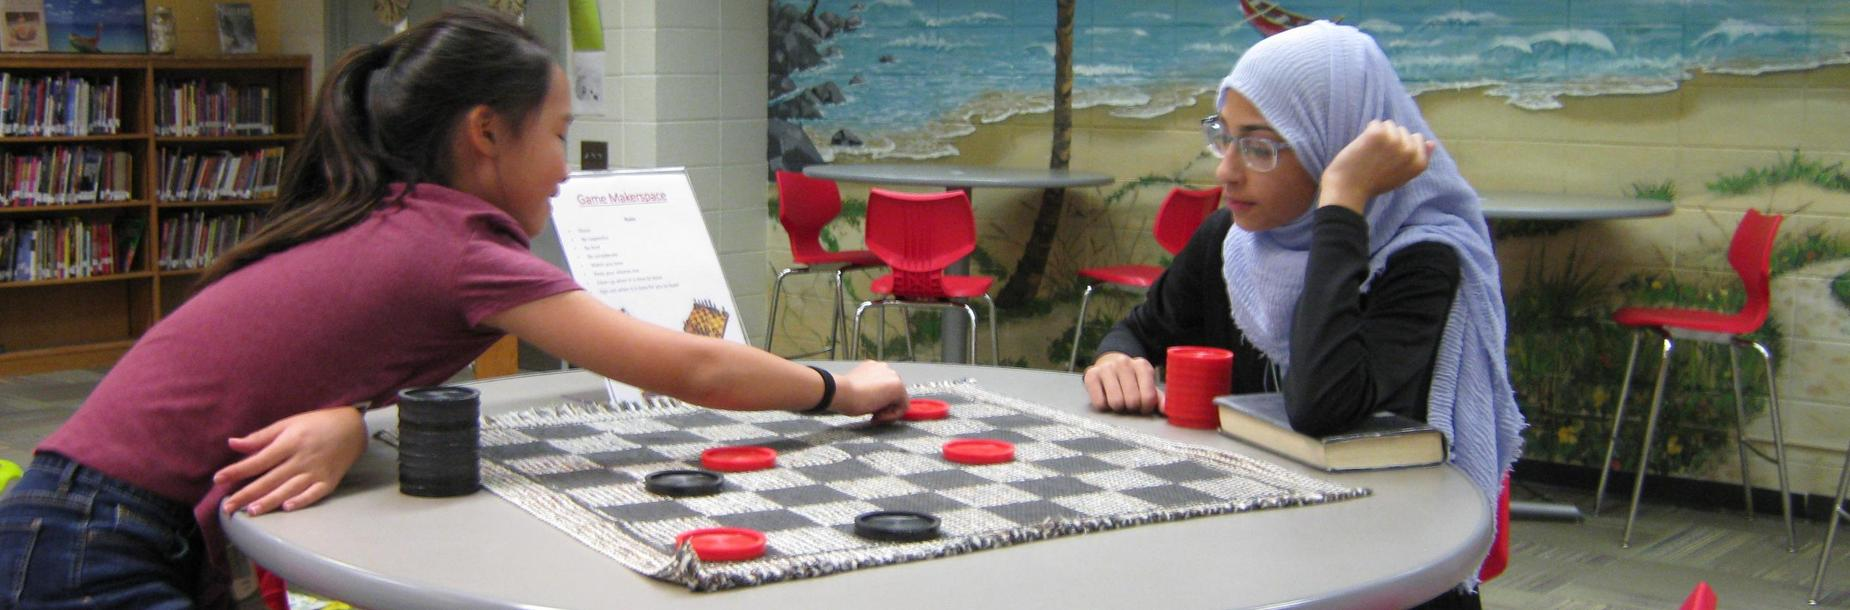 Students playing checkers in the learning commons makerspace